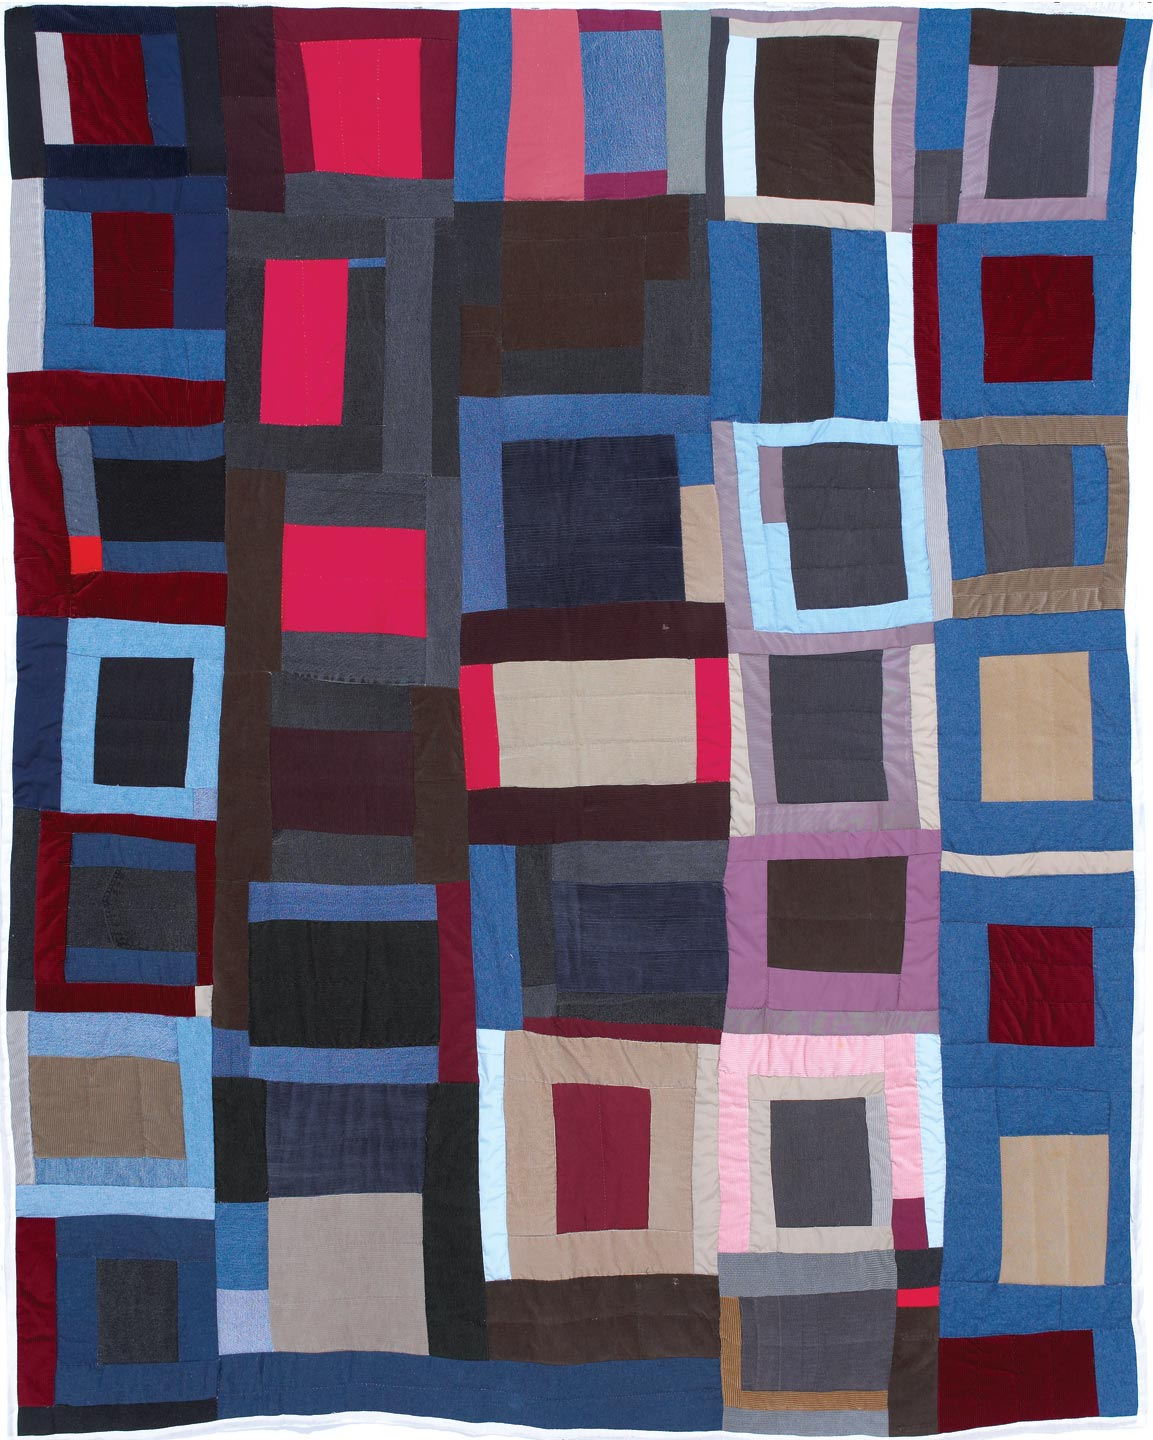 BLOCKS QUILT by Annie Mae Young, 2003.  General Acquisition Fund.